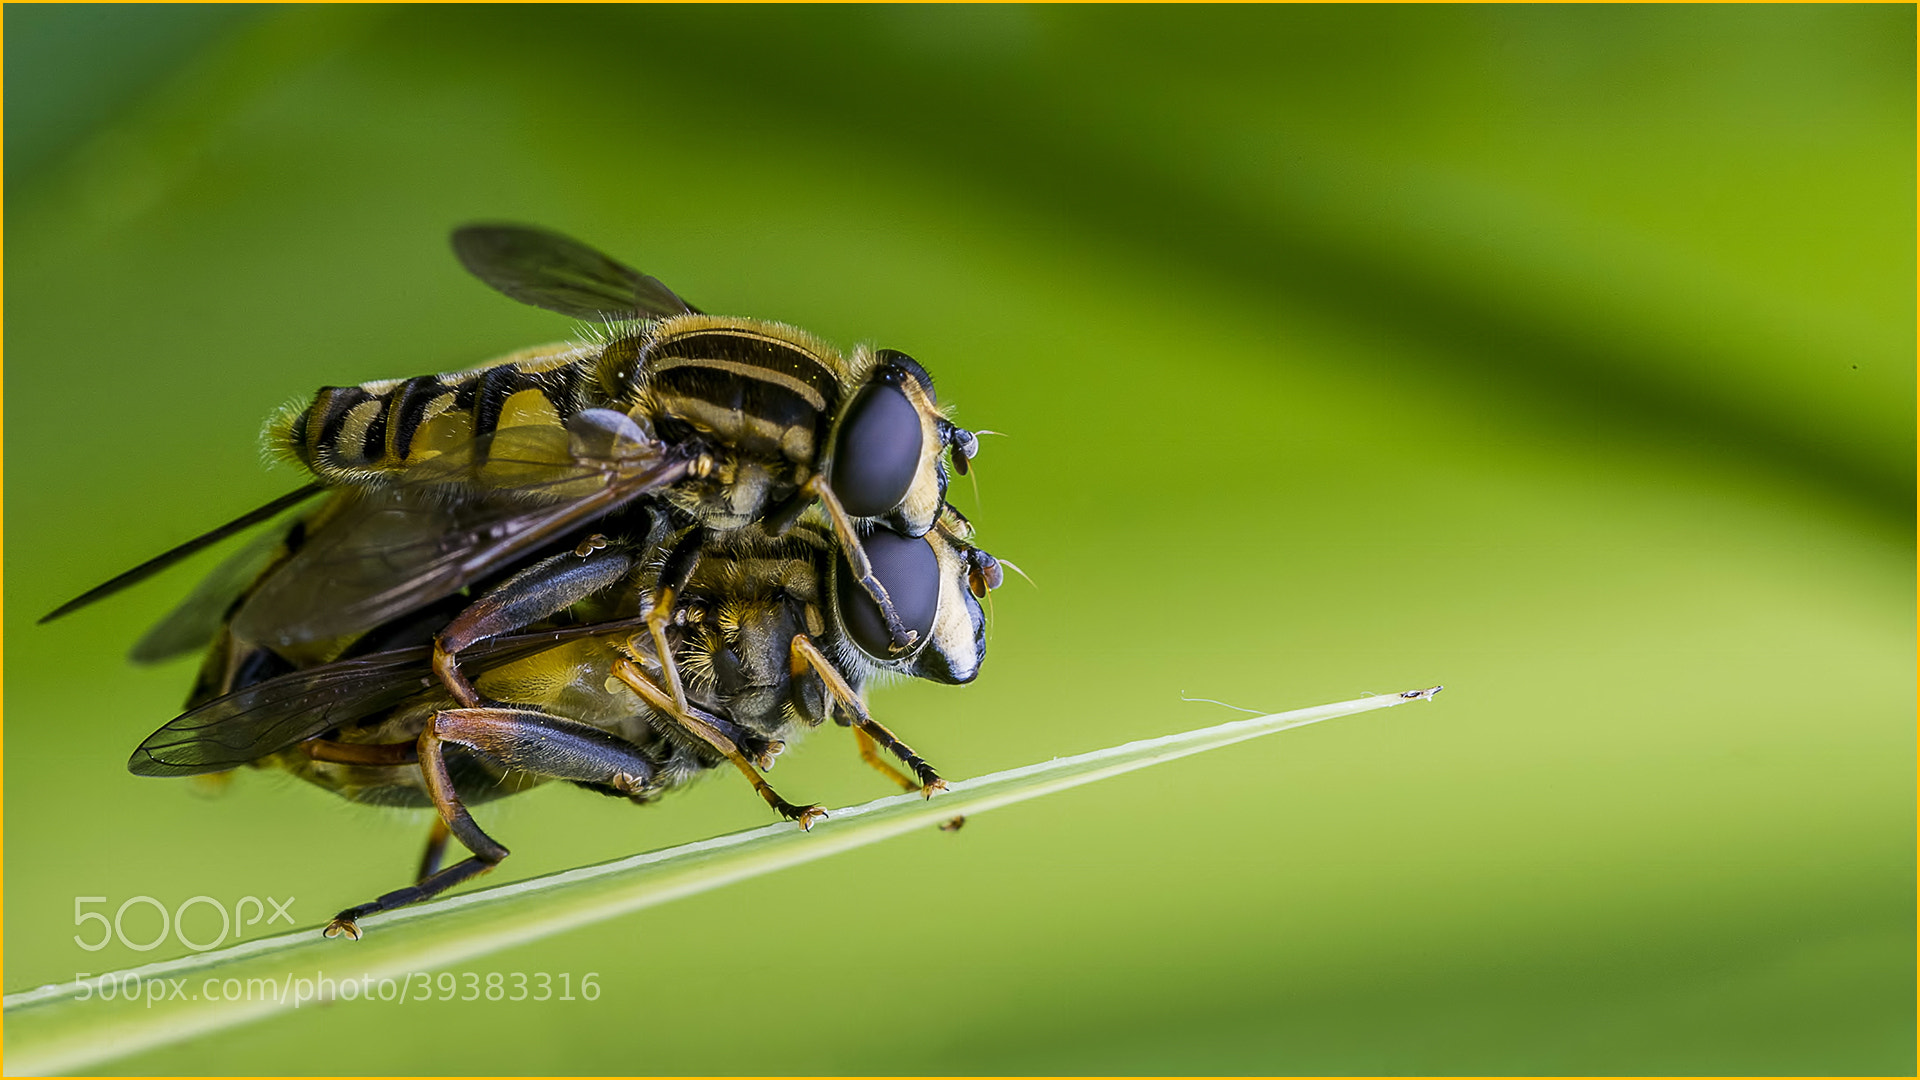 Photograph Mating Hoverflies by allan squires on 500px